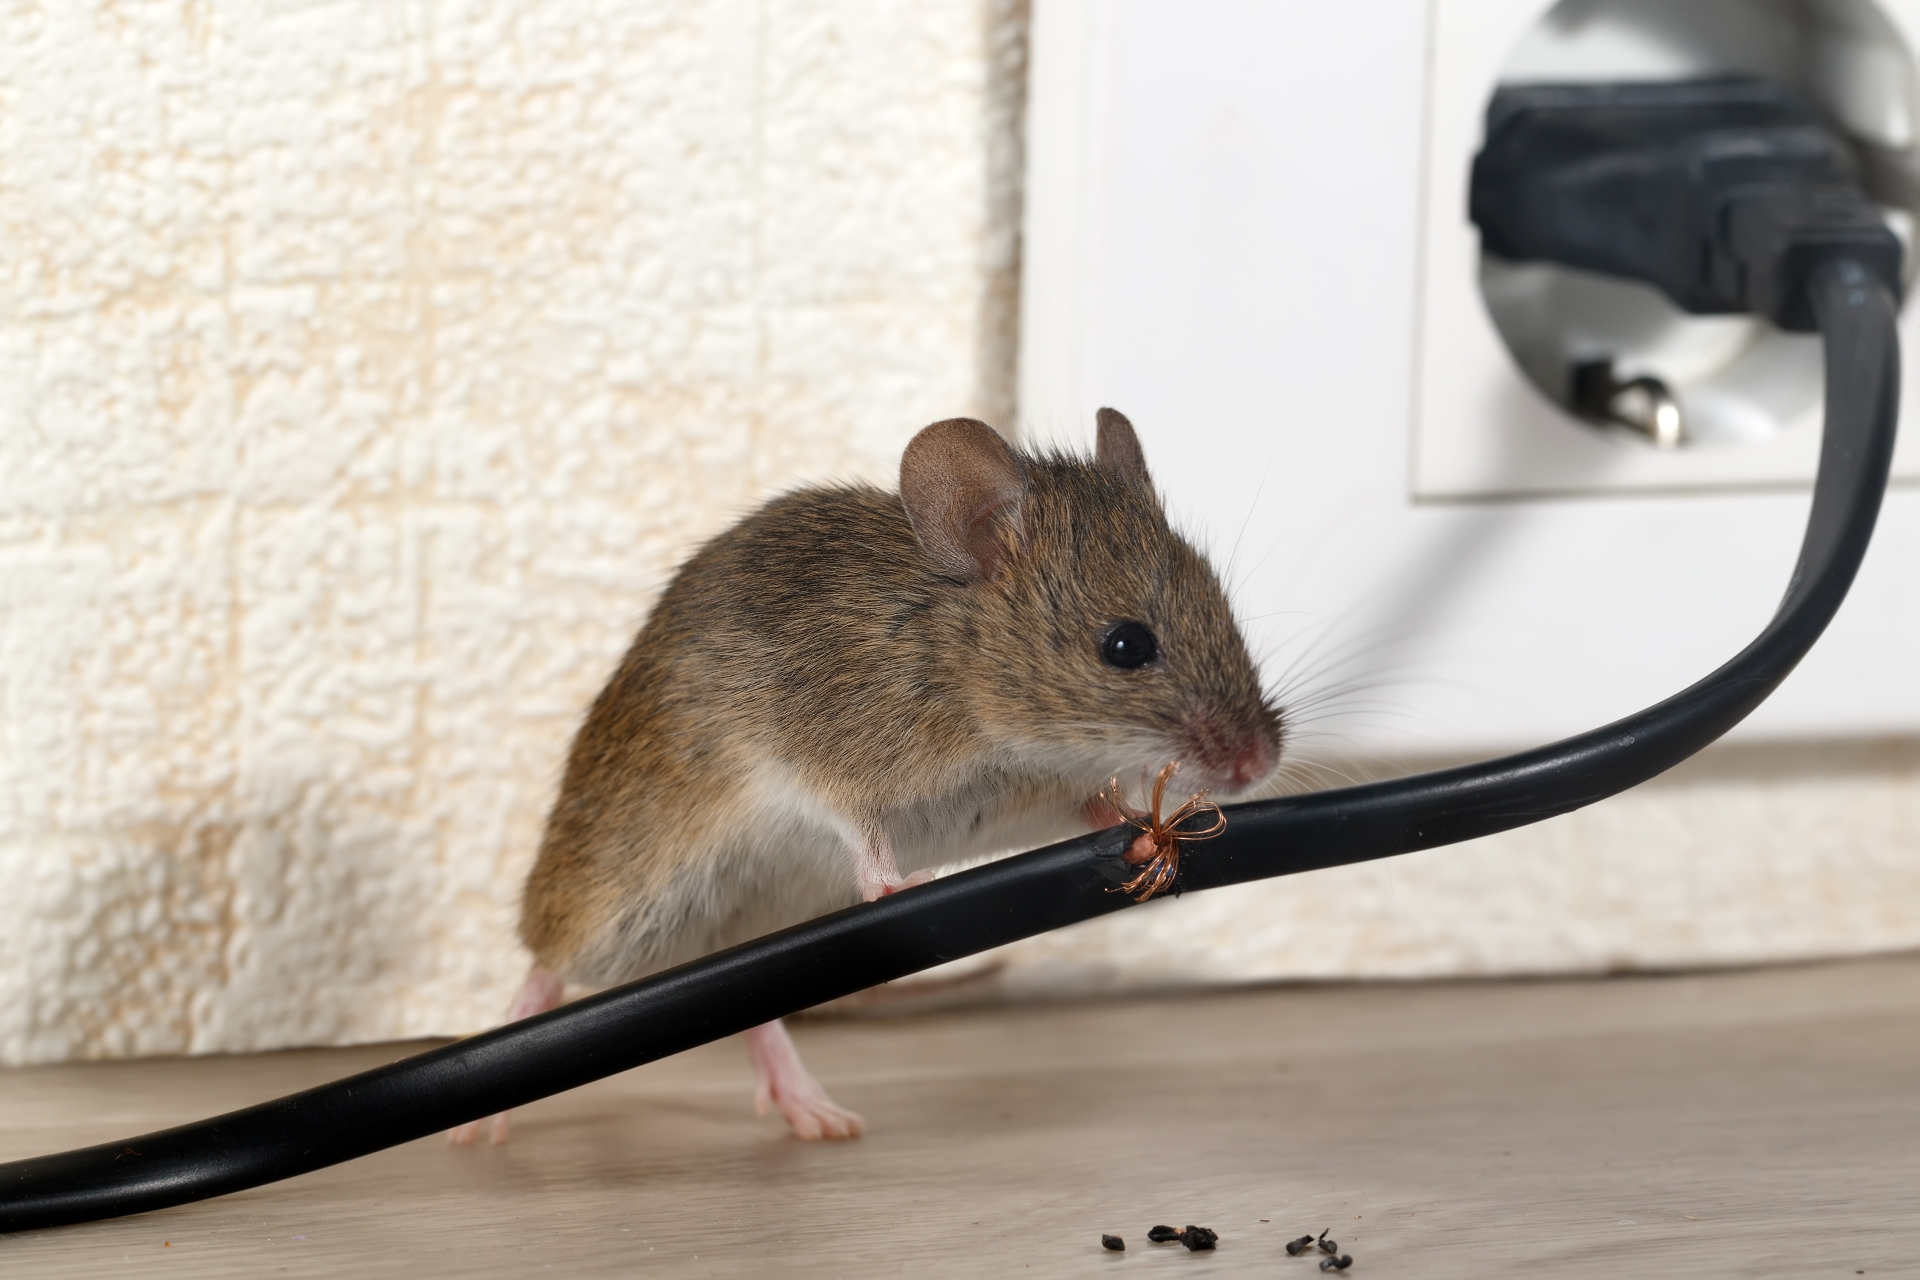 Mice Infestation, Pest Control in Potters Bar, Cuffley, Northaw, EN6. Call Now 020 8166 9746